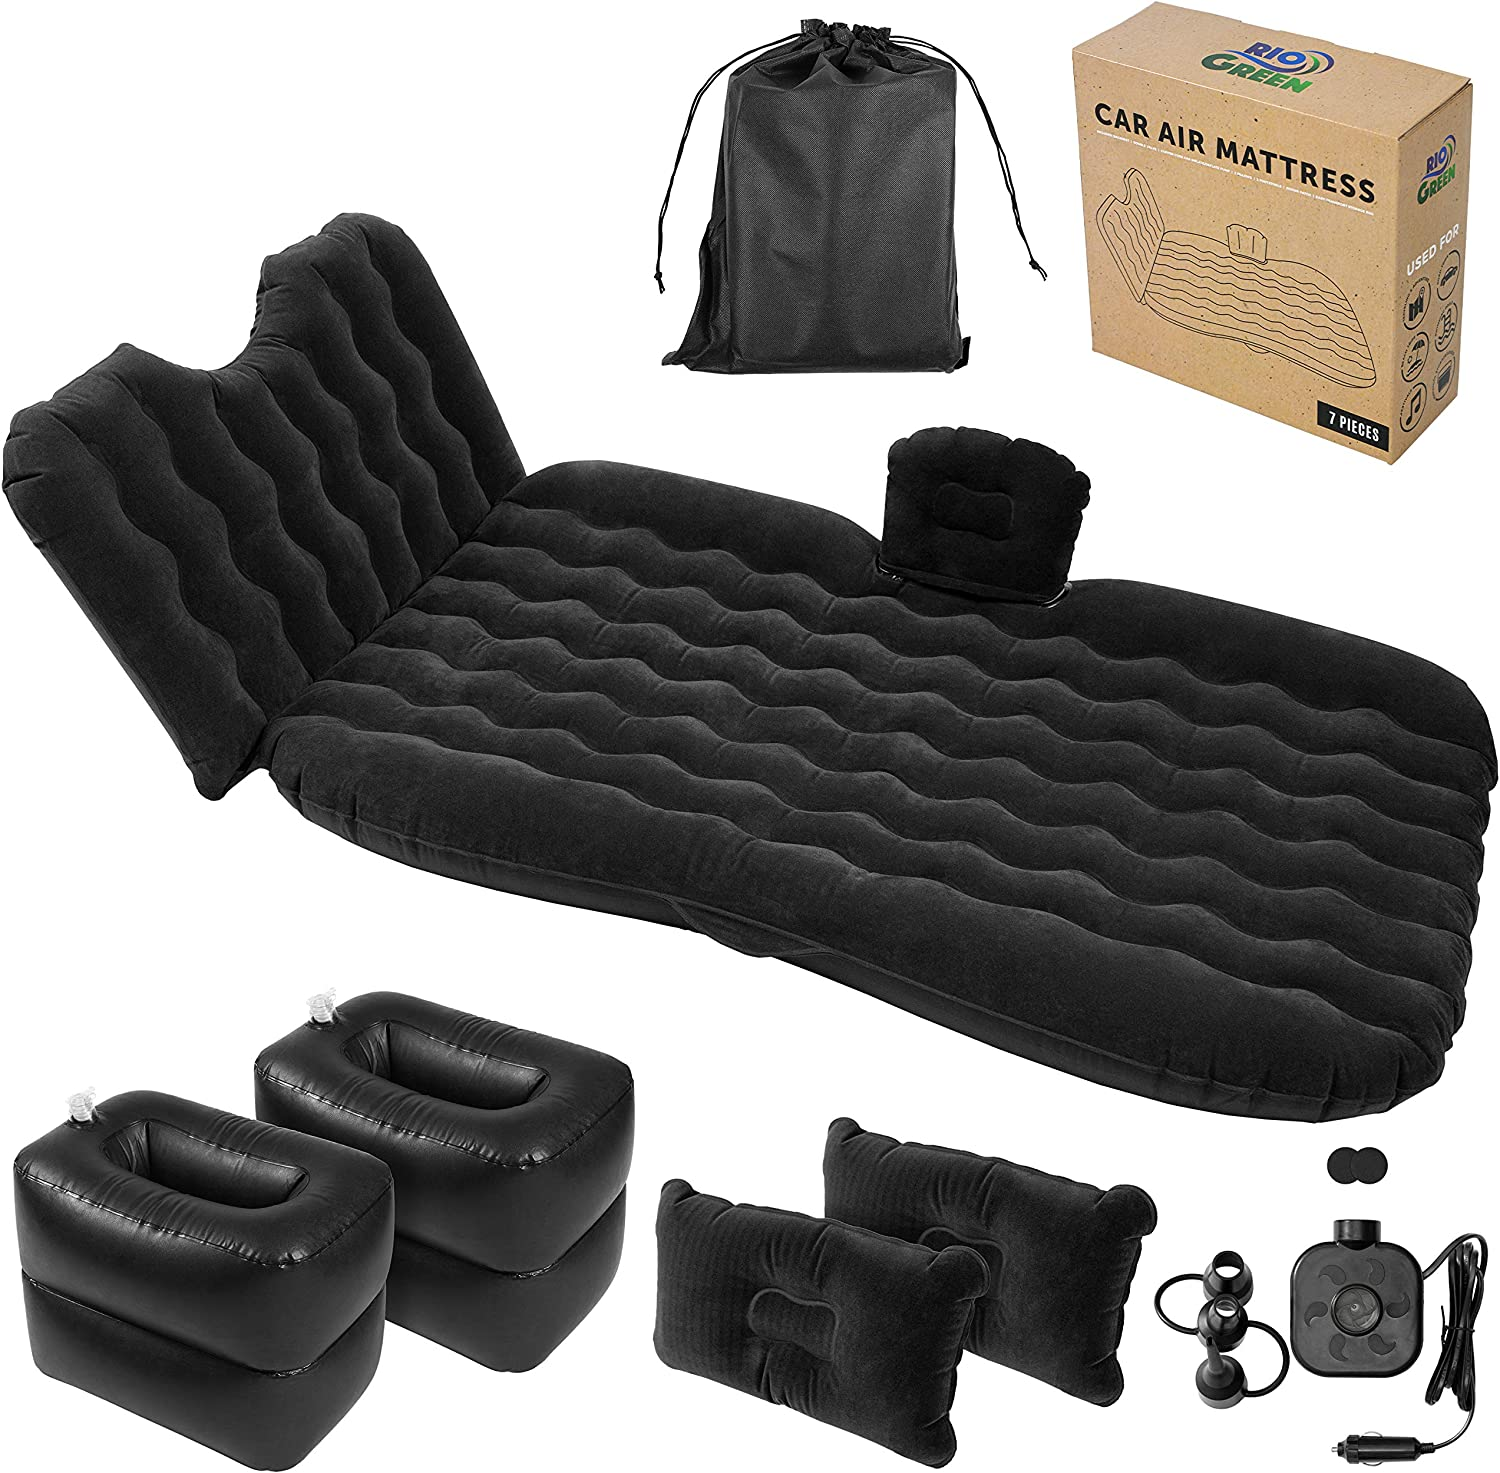 """Rio Green Car Air Mattress - Inflatable Bed for Car and Camping 53"""" x 35"""" - Blow-Up Air Mattress for Back Car Seat with Electric Air Pump - Portable Bed Great for Road Trips, Overnight Guests, Pools"""